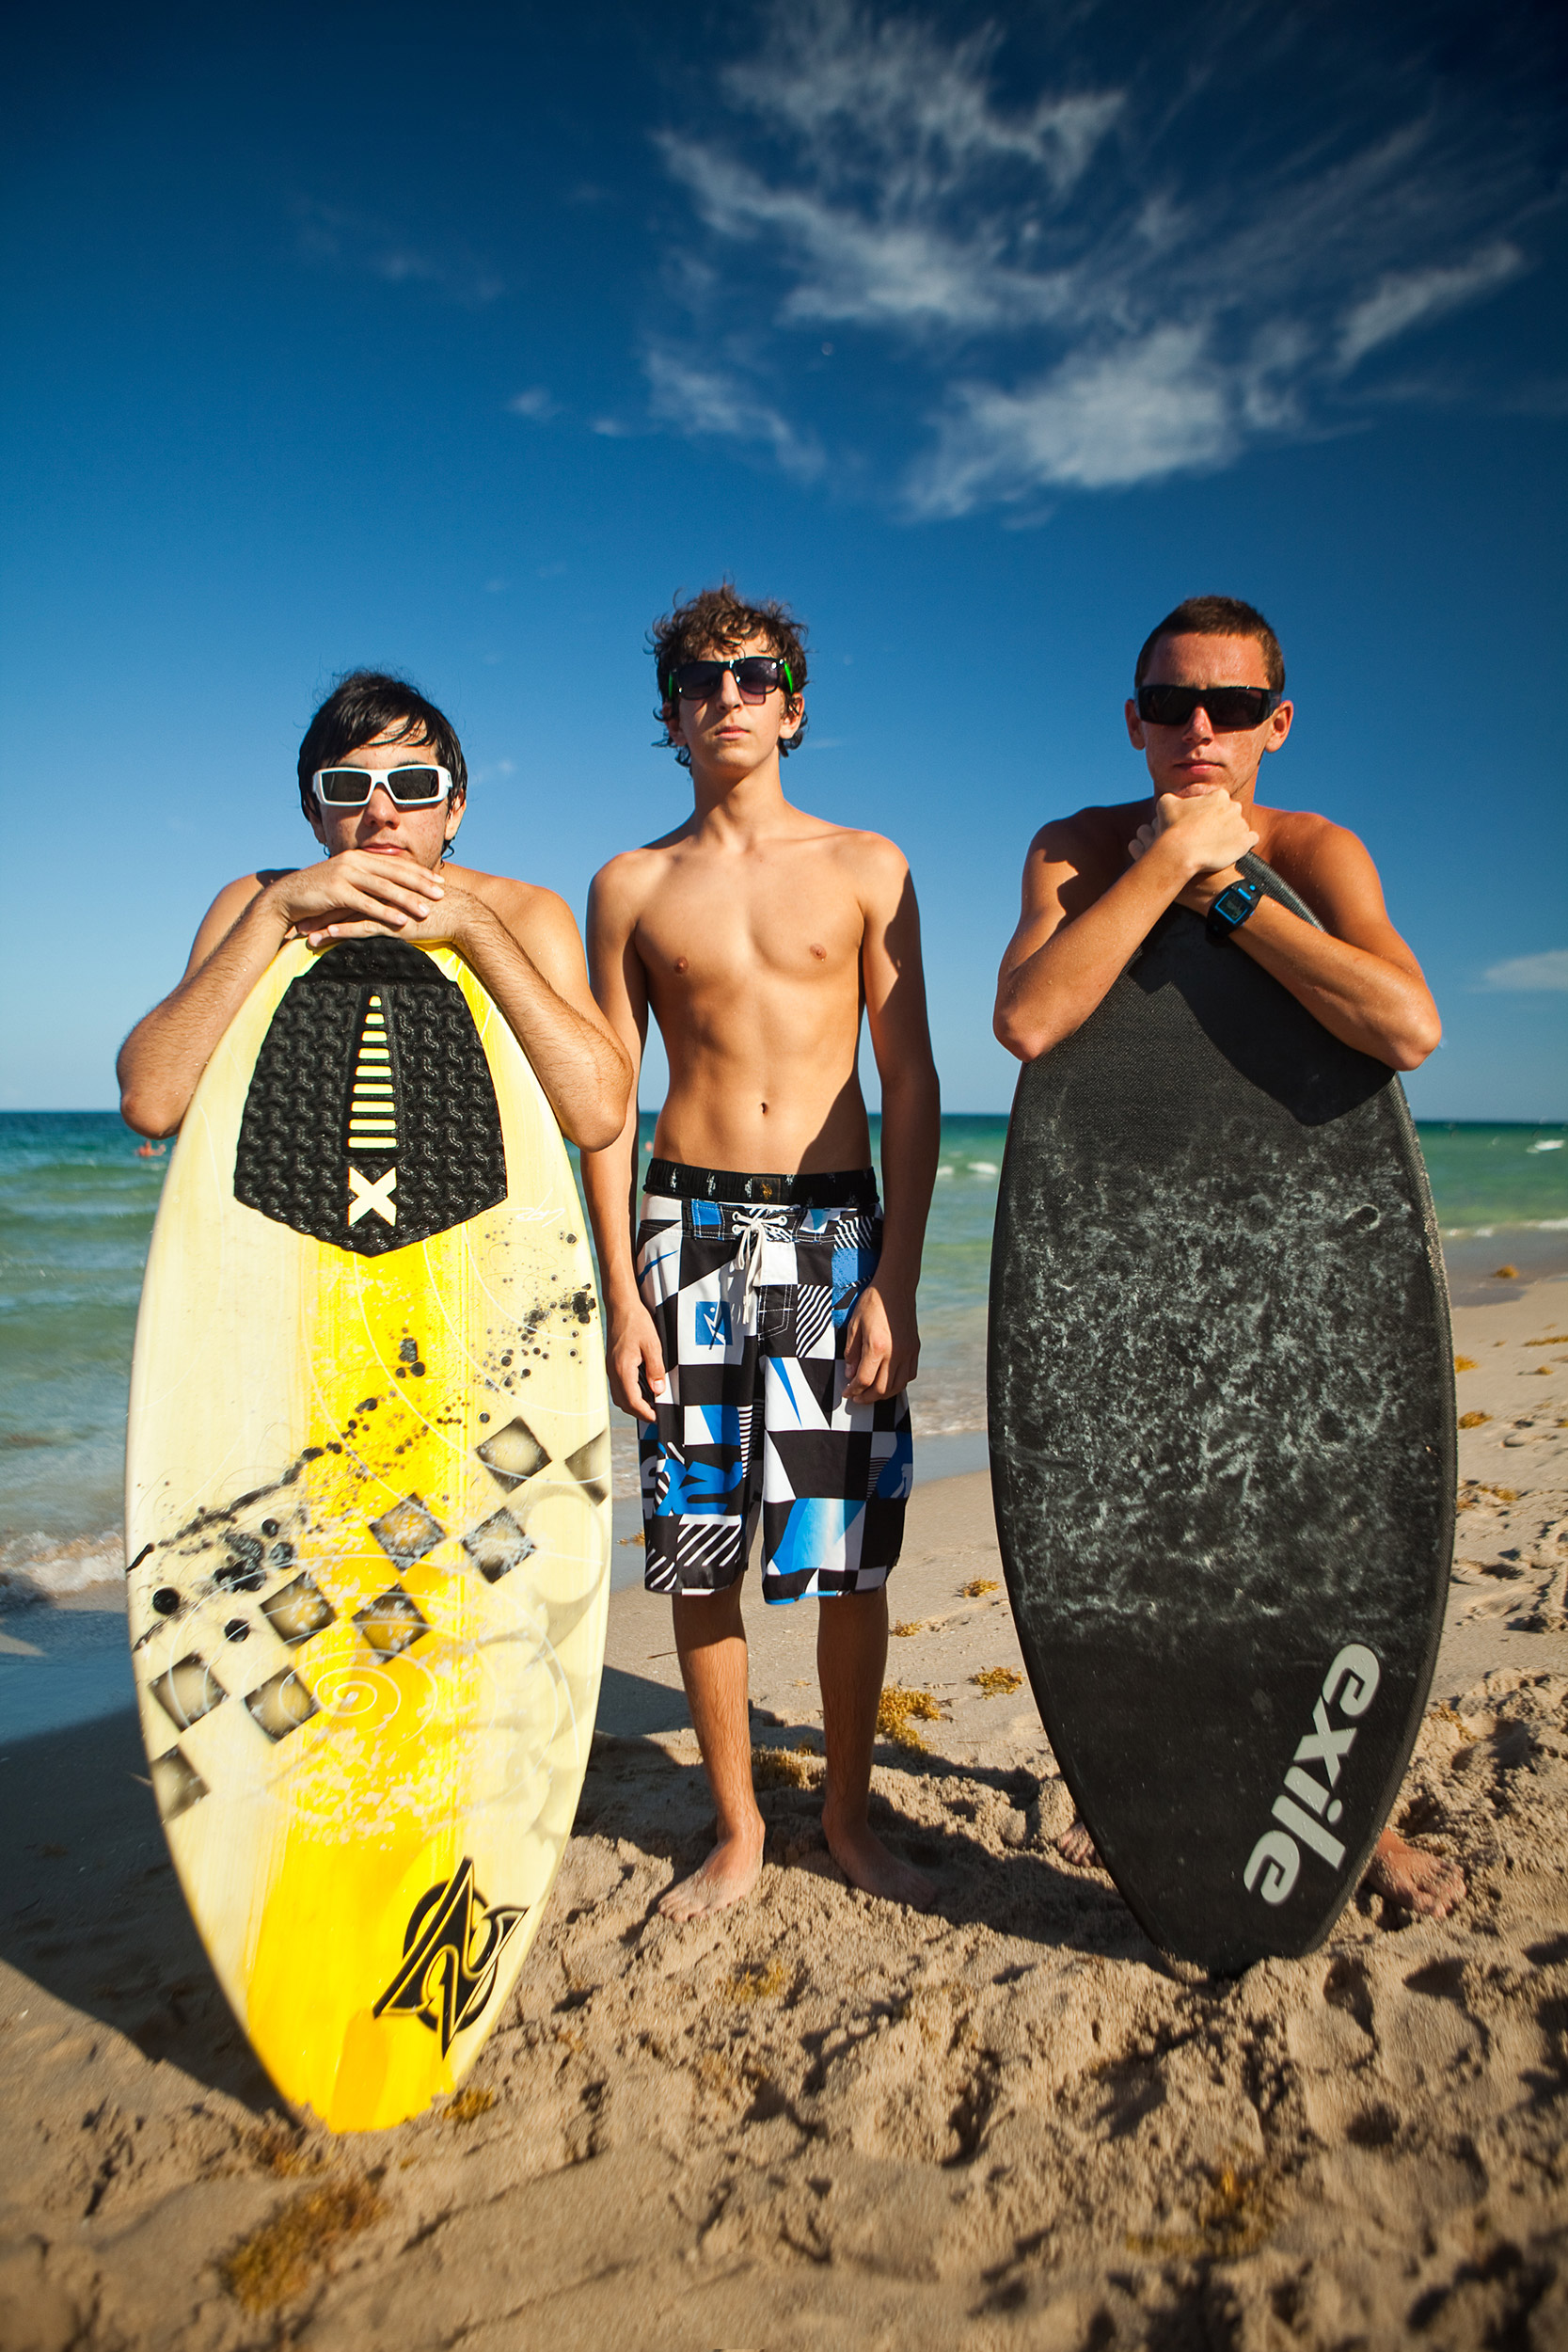 fortlauderdale_features_springbreak_youth_skimboarding_activities-6337.jpg